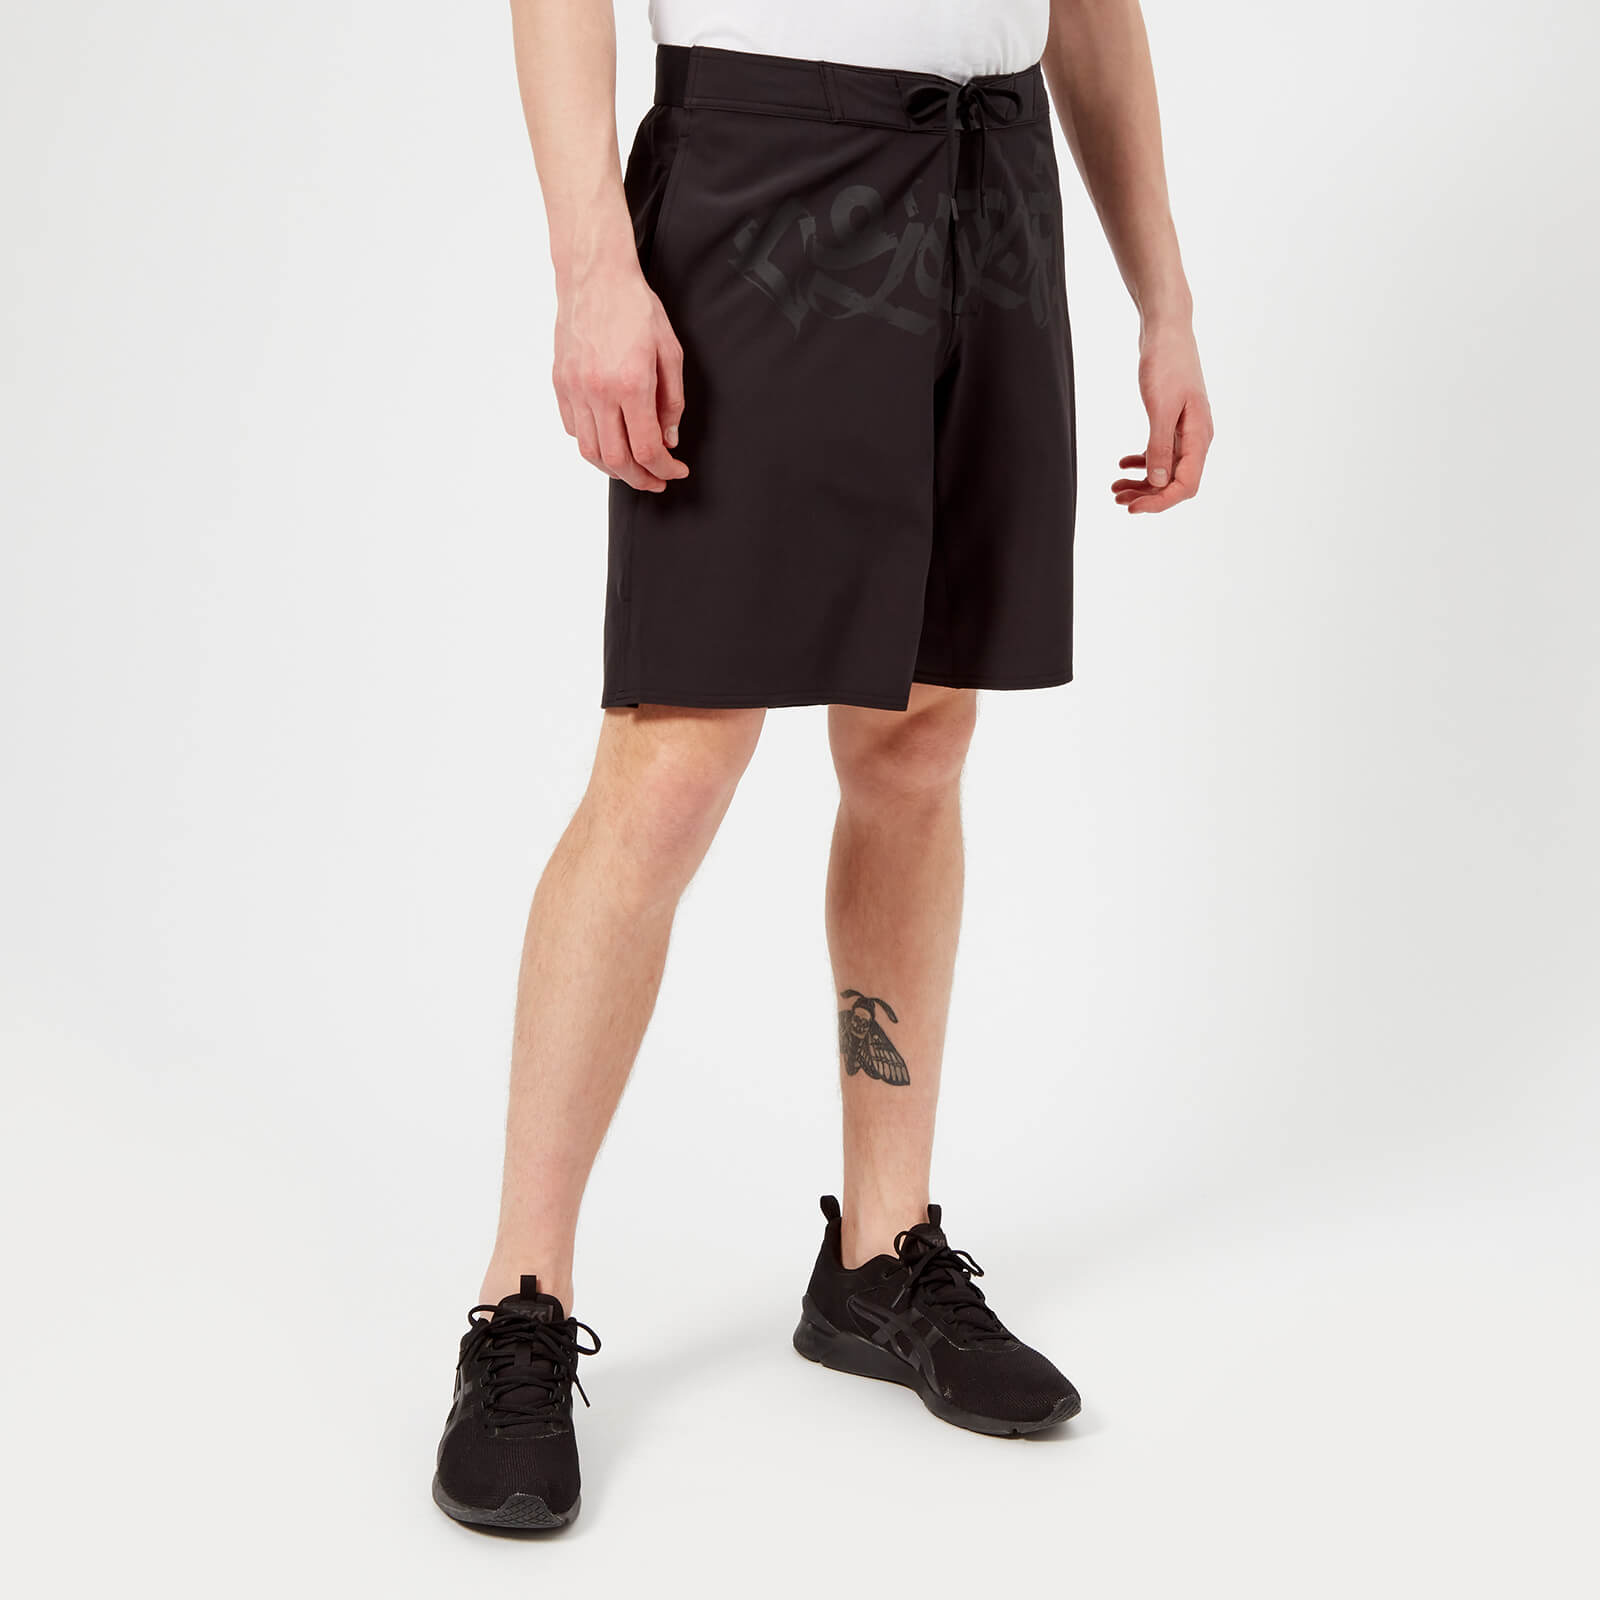 Reebok Men's CrossFit Super Nasty Base Shorts Black